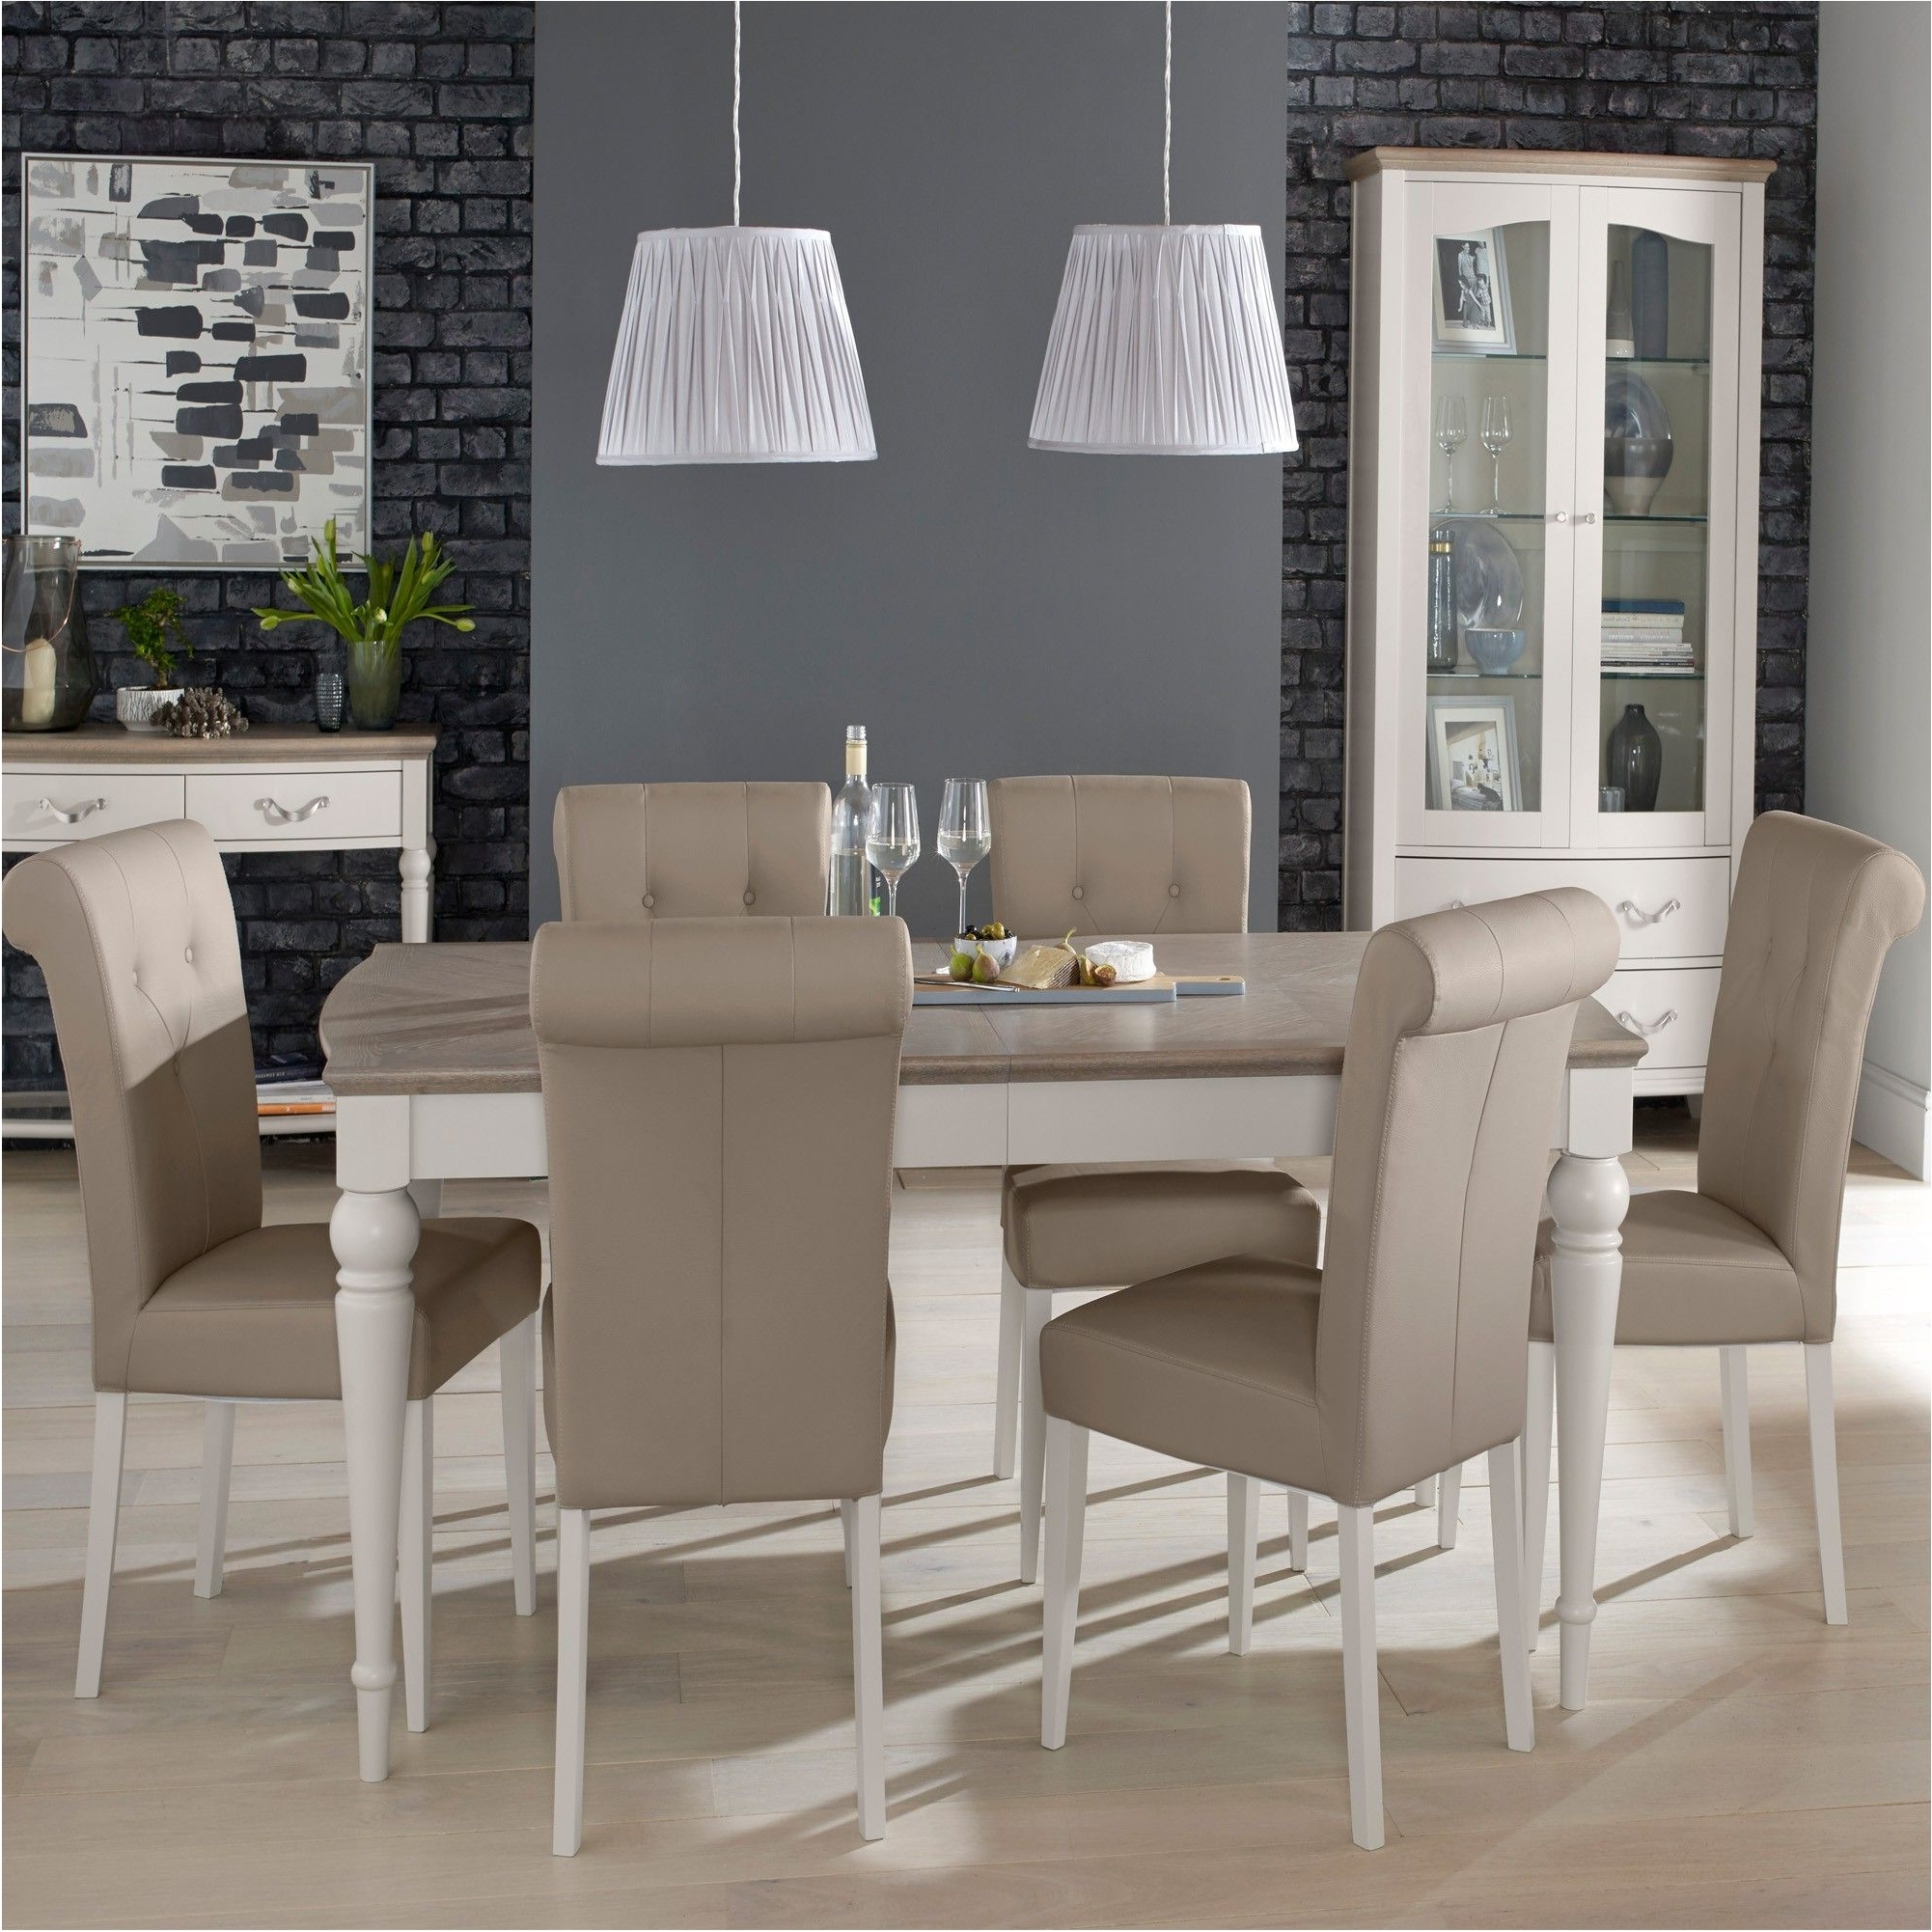 Breathtaking Collection Geneva Dining Table And 6 Chairs Dining Sets Within Most Popular 6 Seat Dining Tables (View 10 of 25)